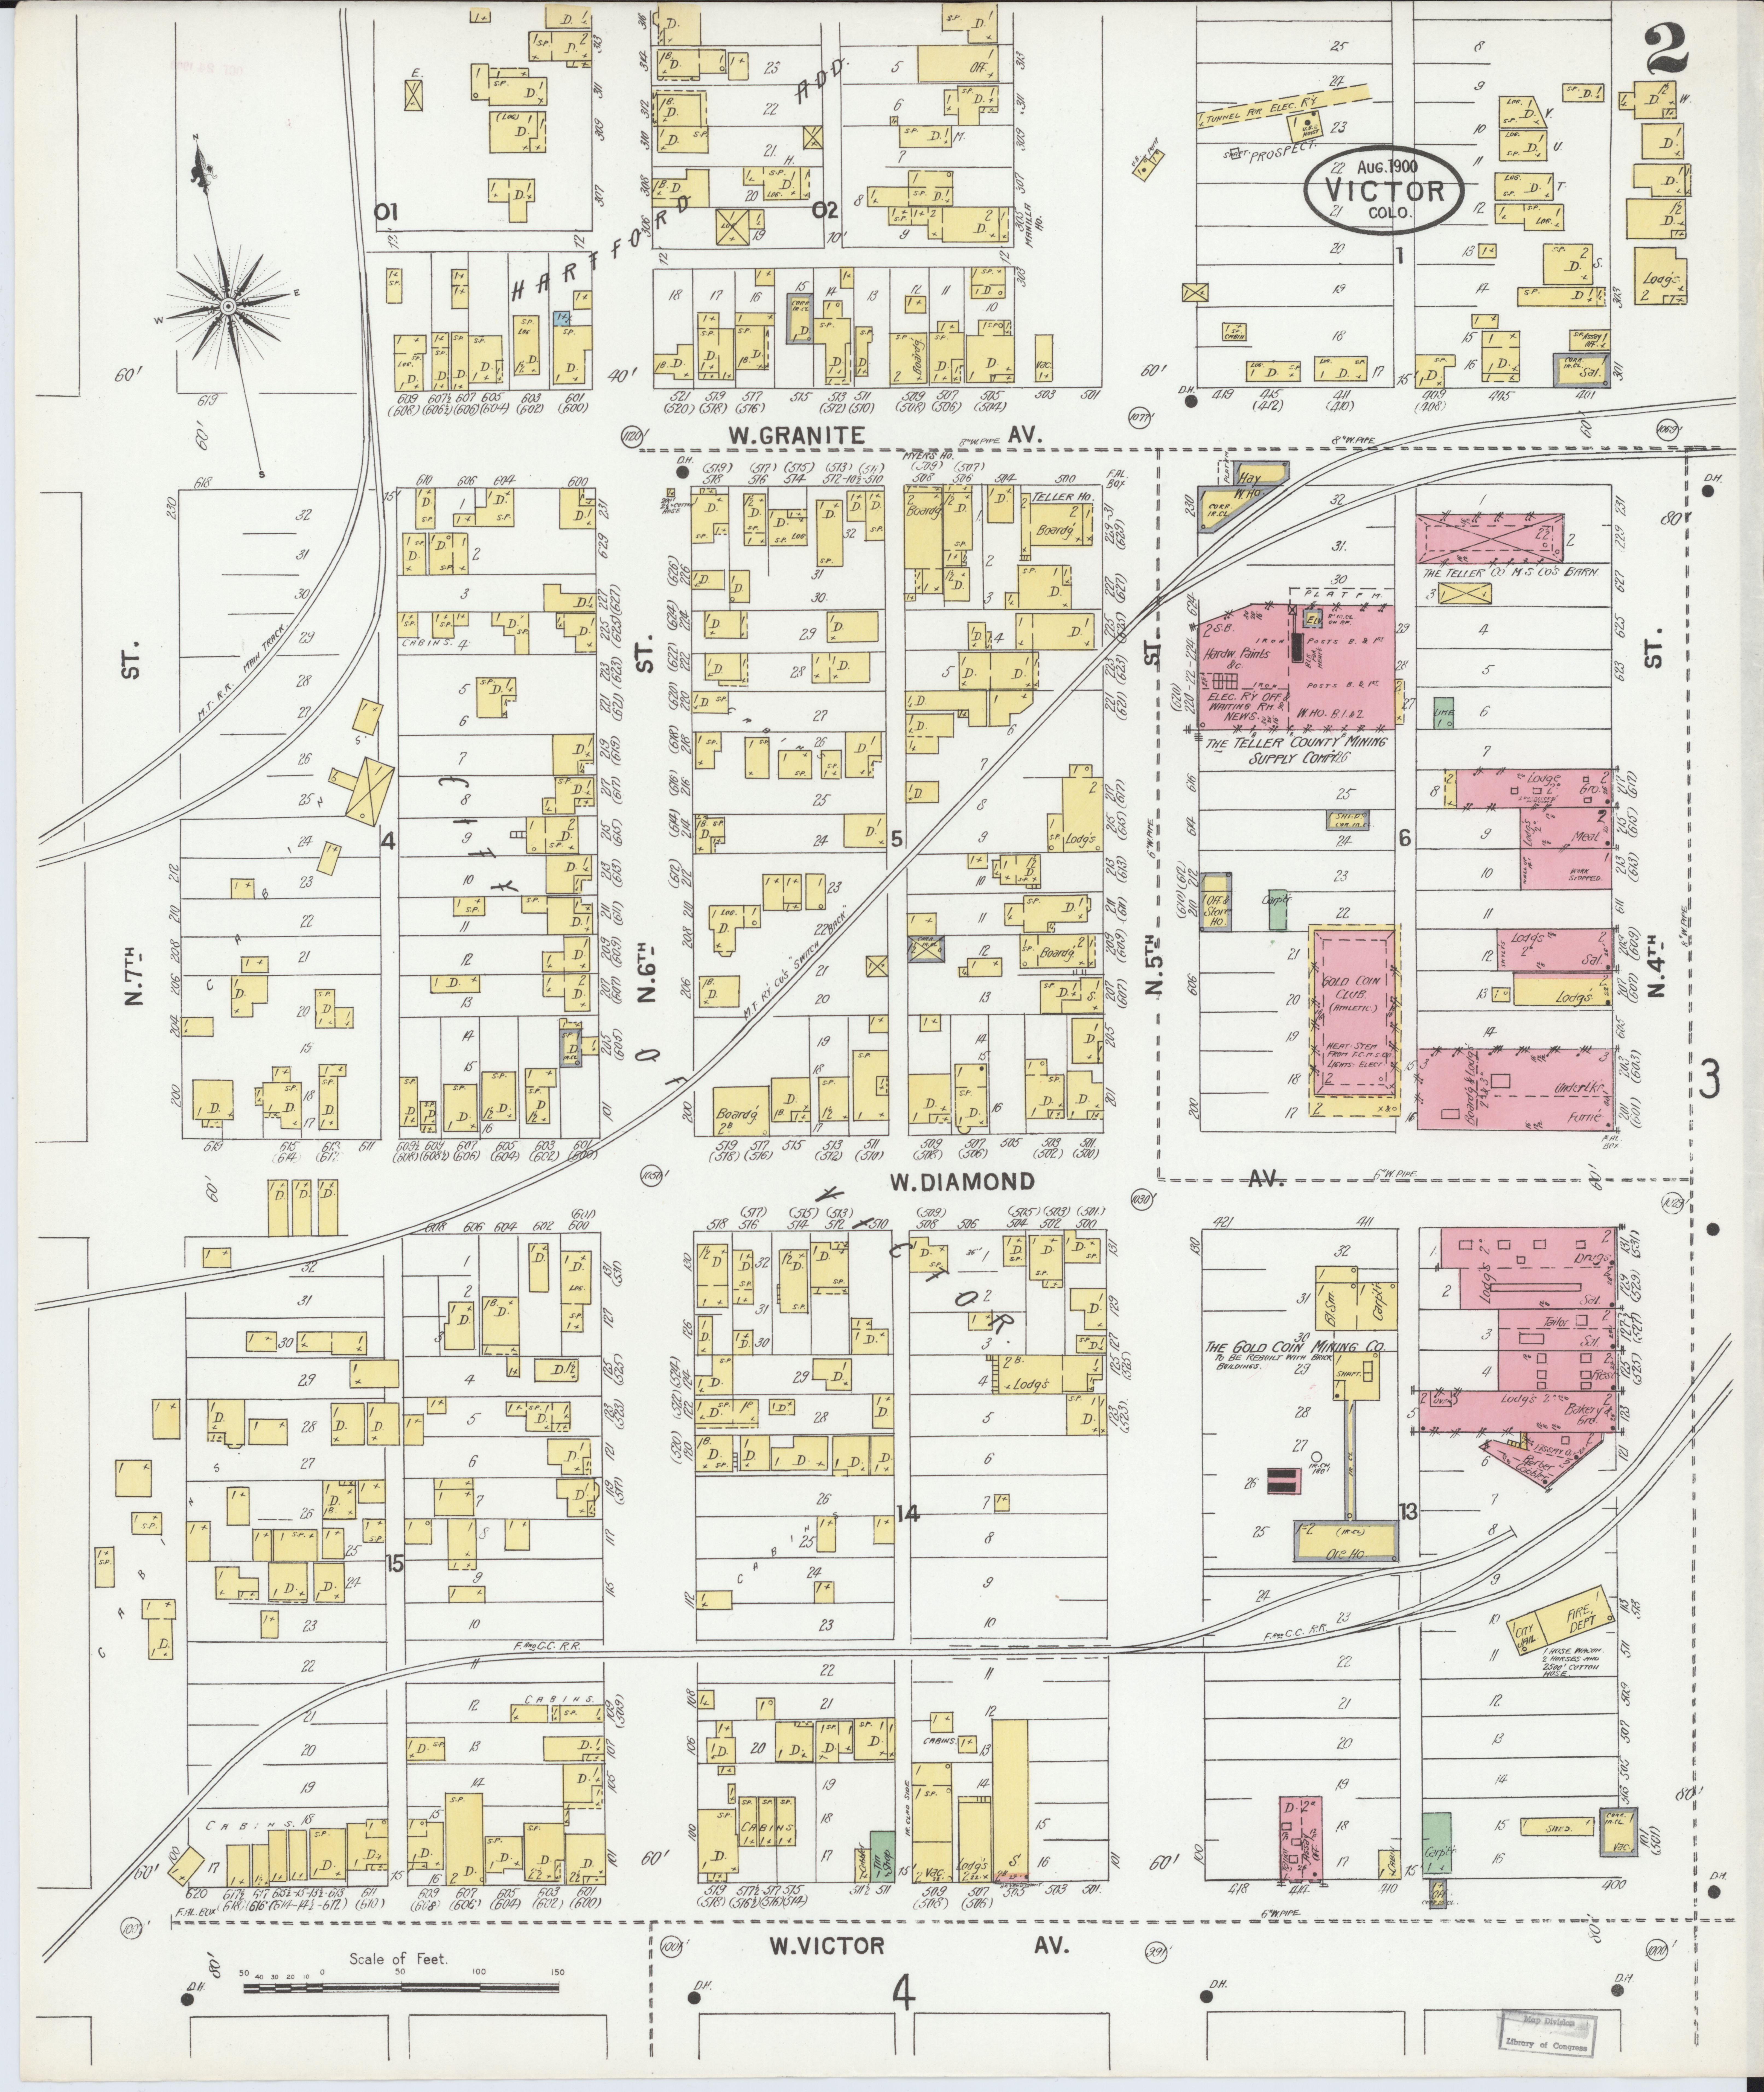 Teller County Fire Map File:Sanborn Fire Insurance Map from Victor, Teller County